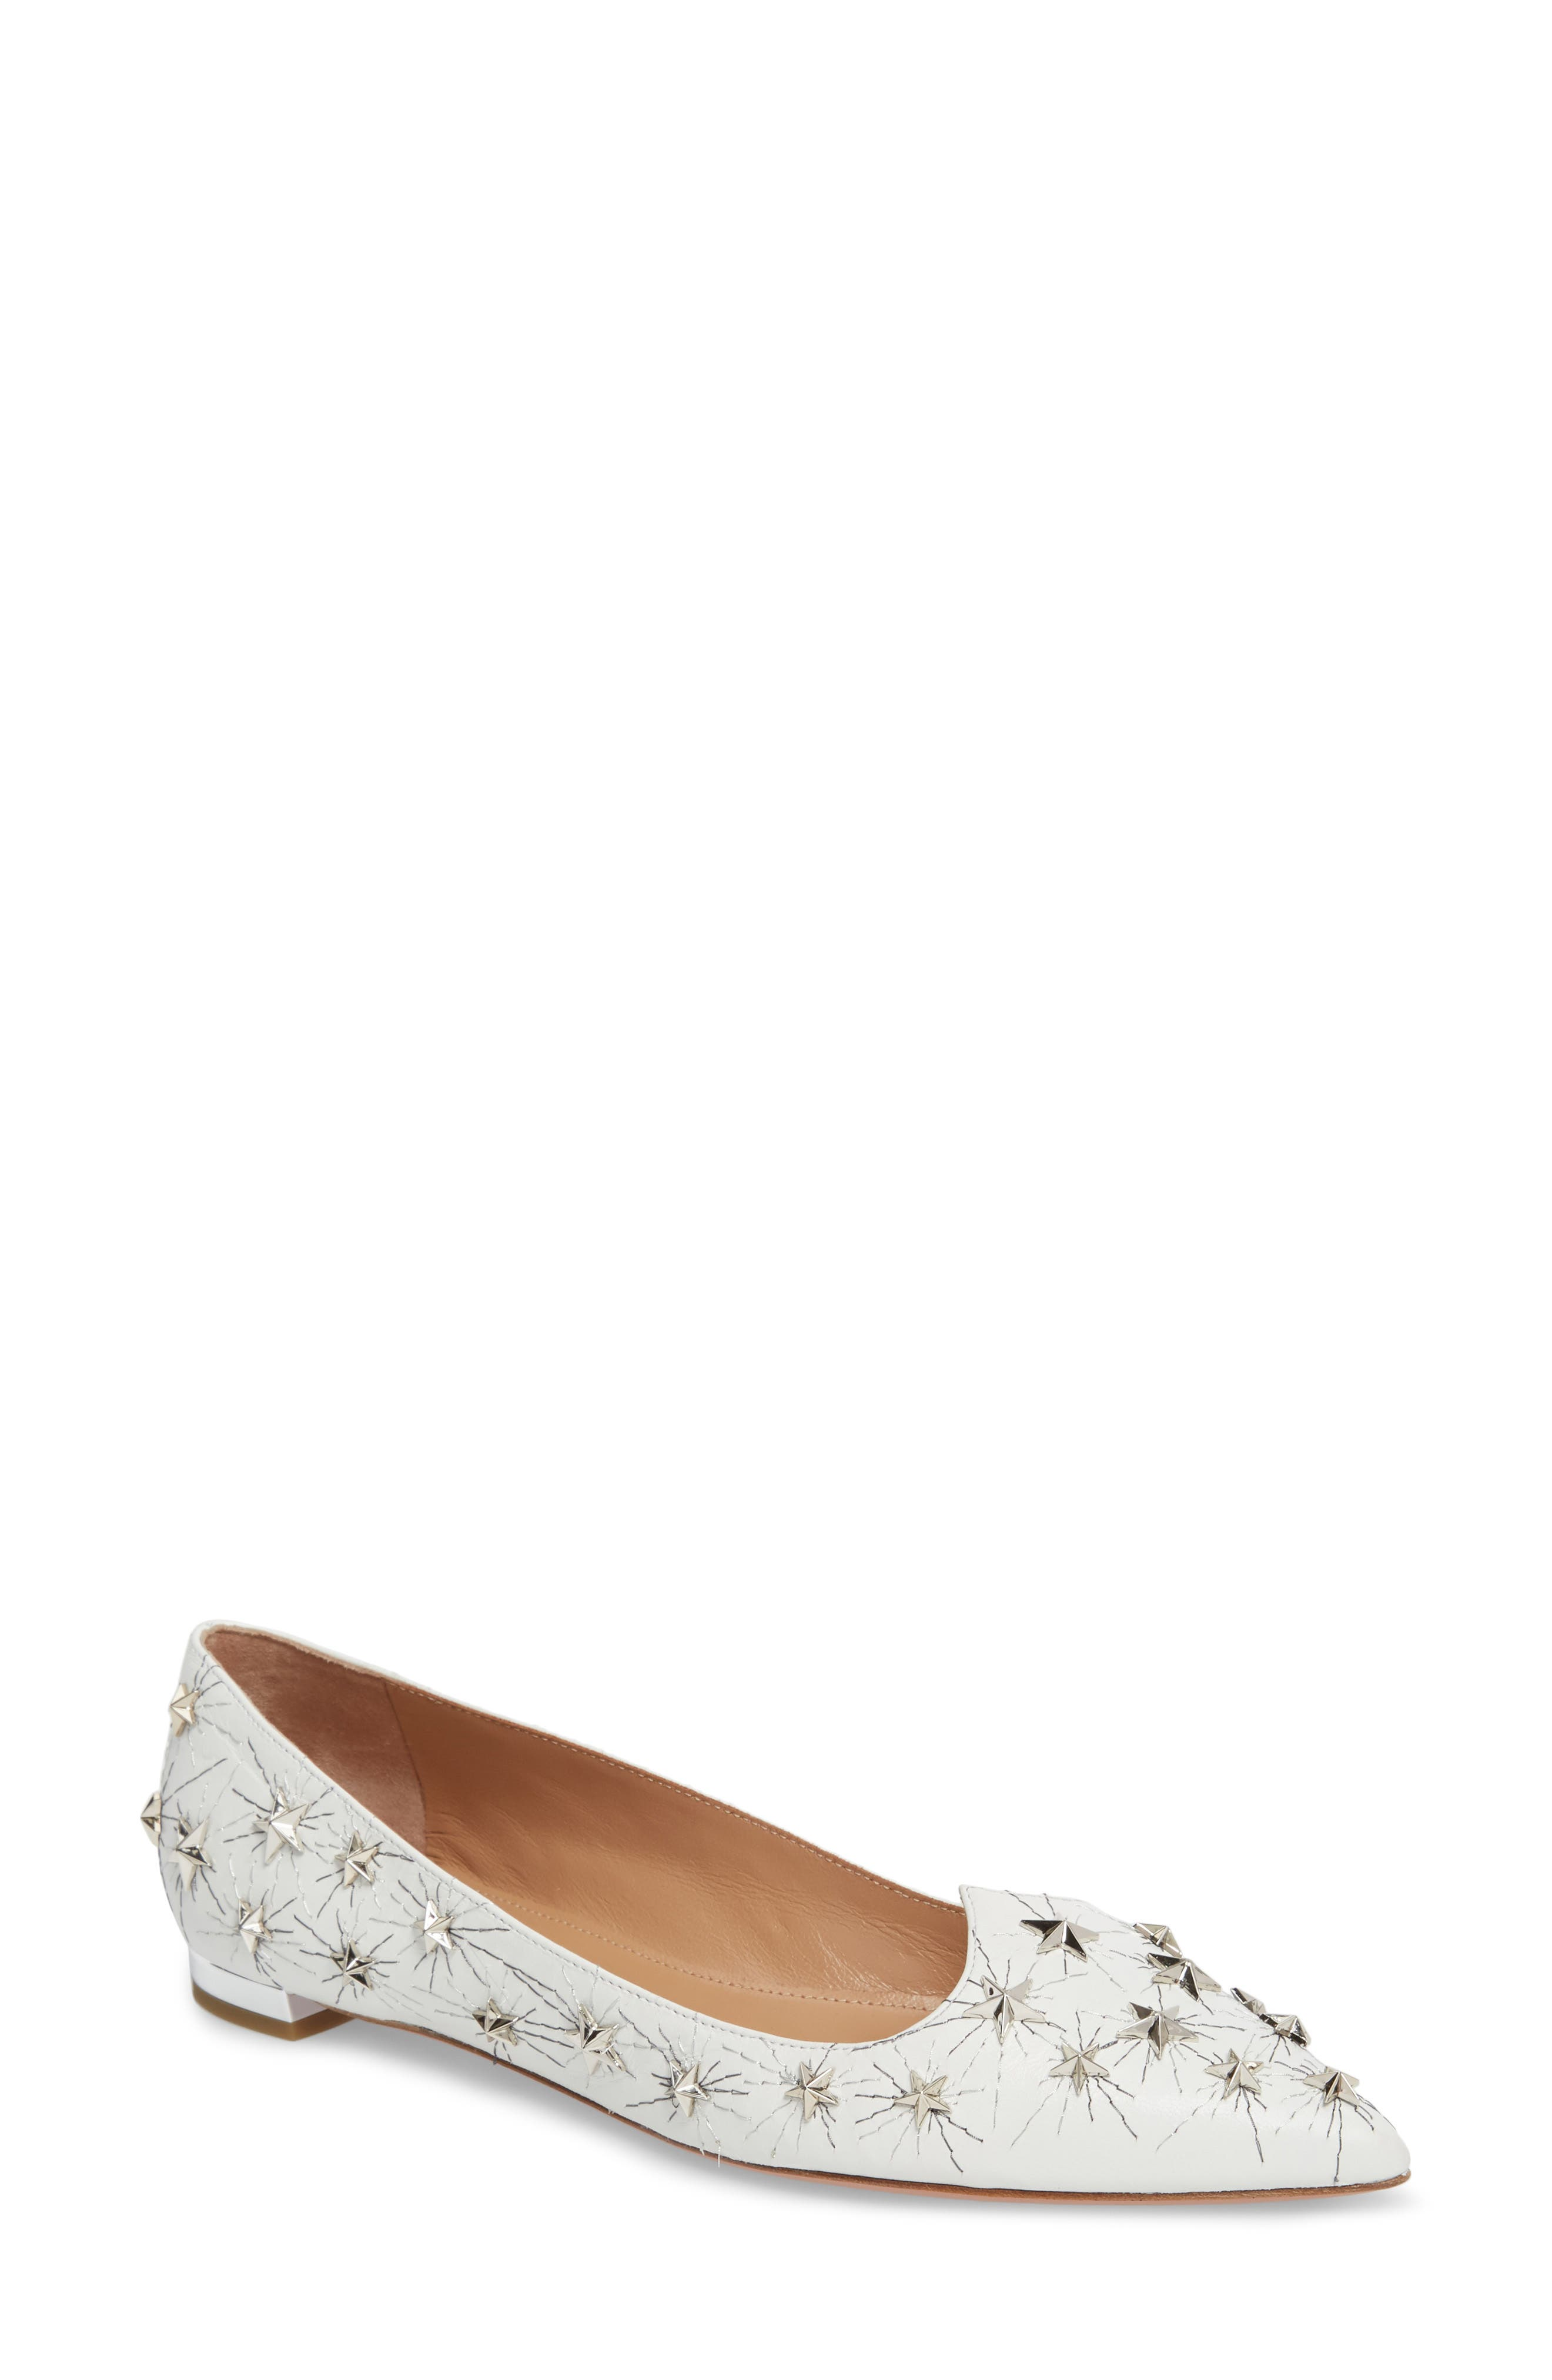 Aquazzura Cosmic Star Pointy Toe Flat (Women)